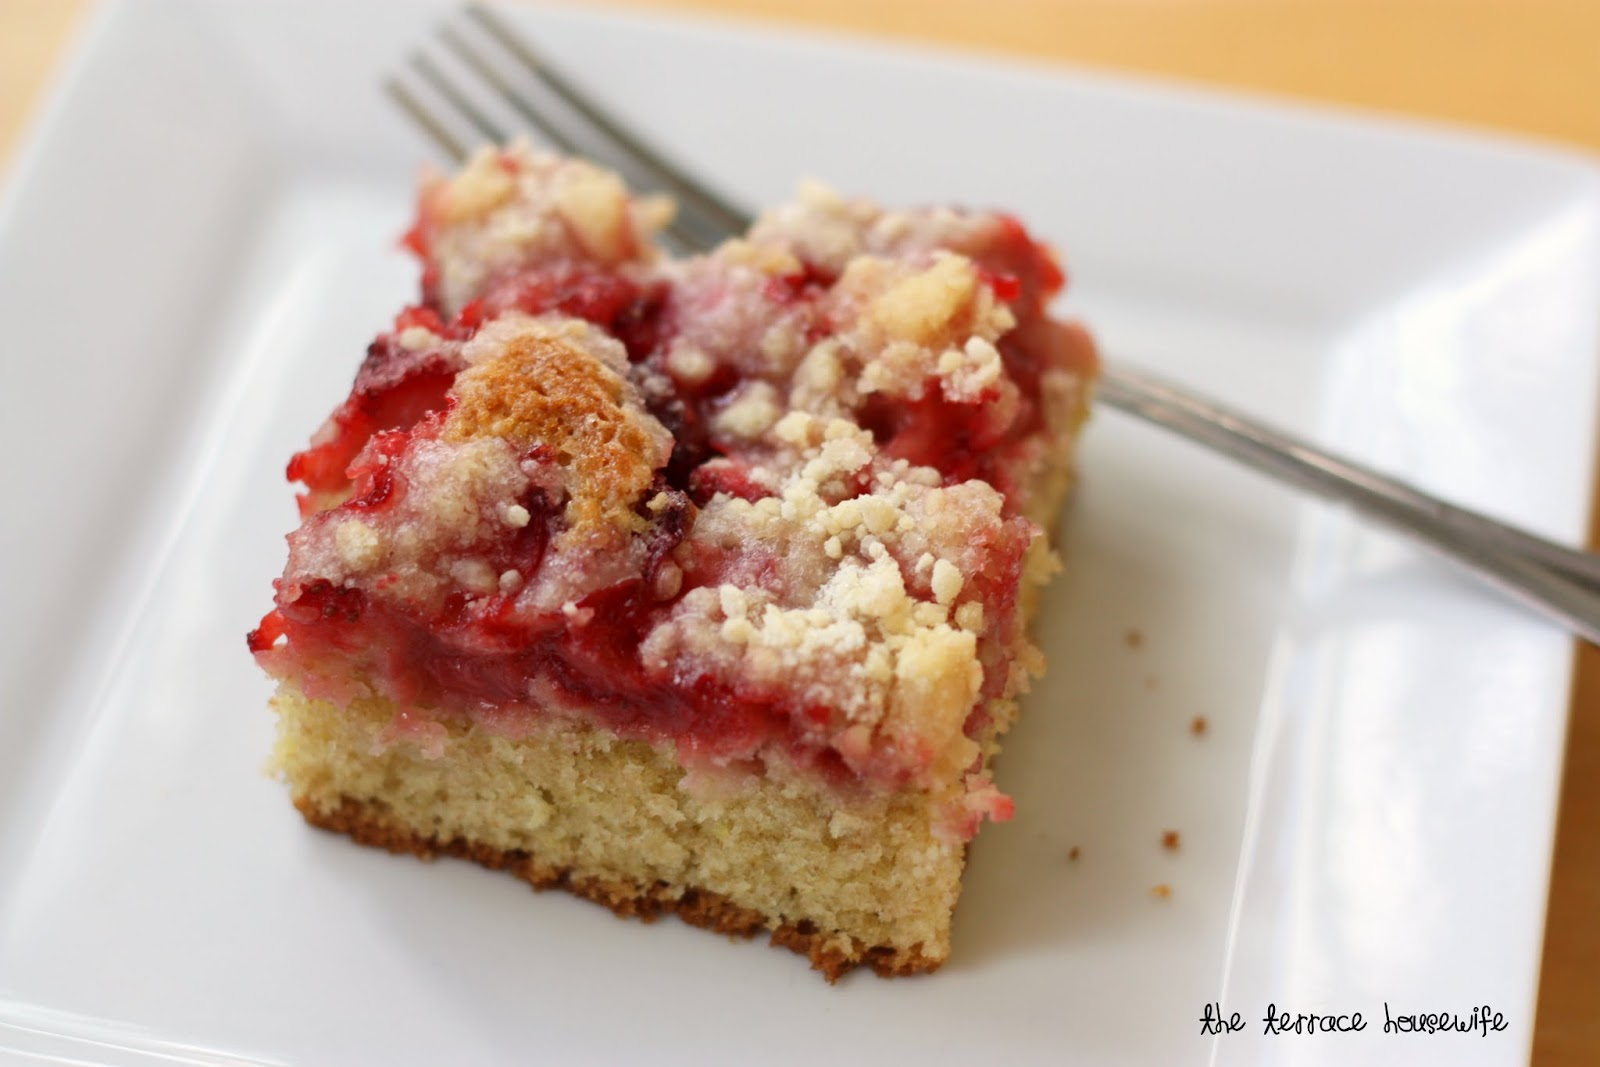 The Terrace Housewife: Strawberry Coffee Cake